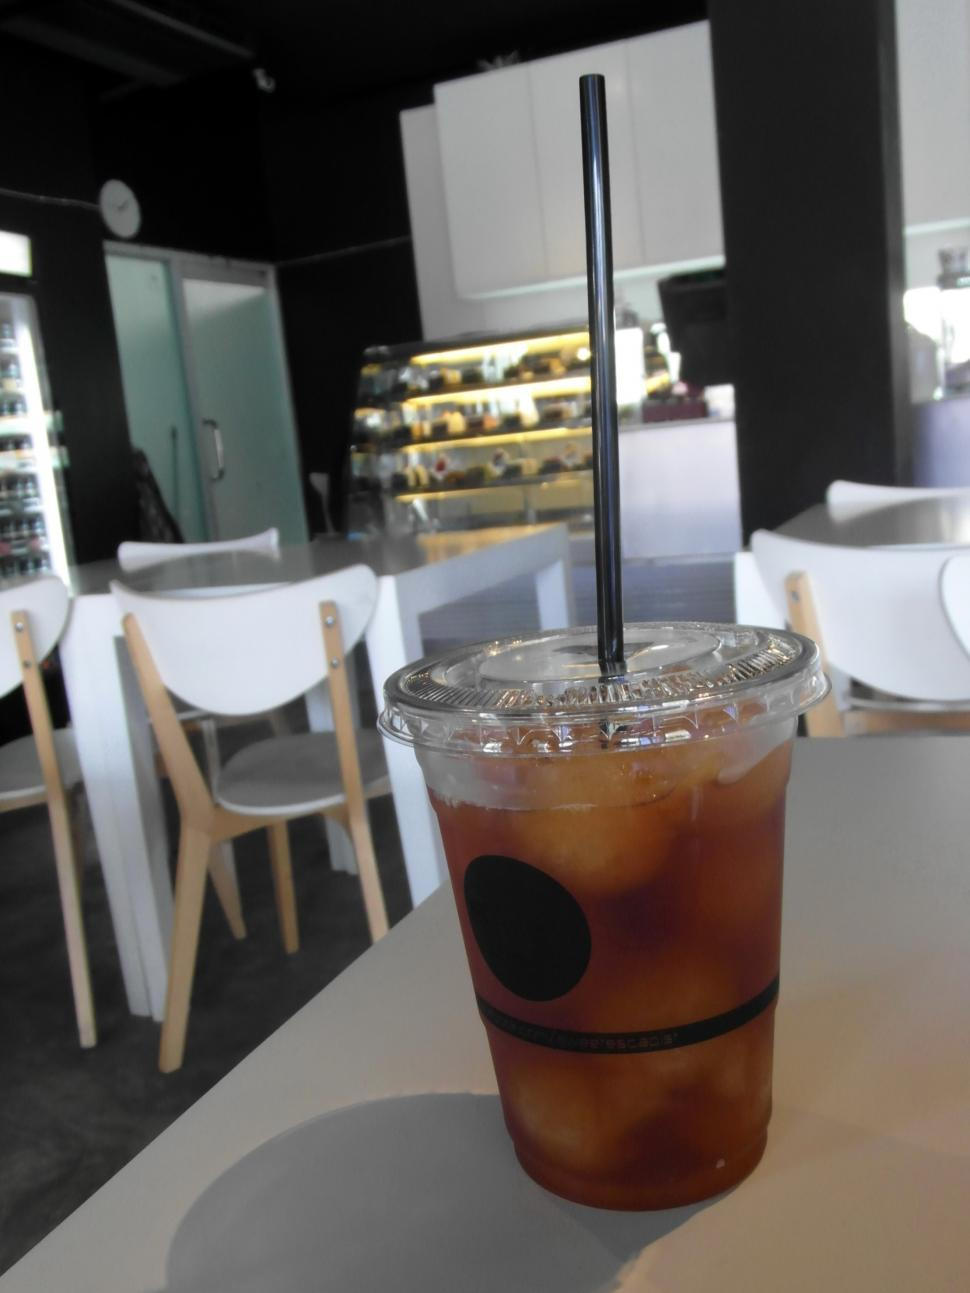 Download Free Stock HD Photo of Iced Lemon Tea in a Cafe Online